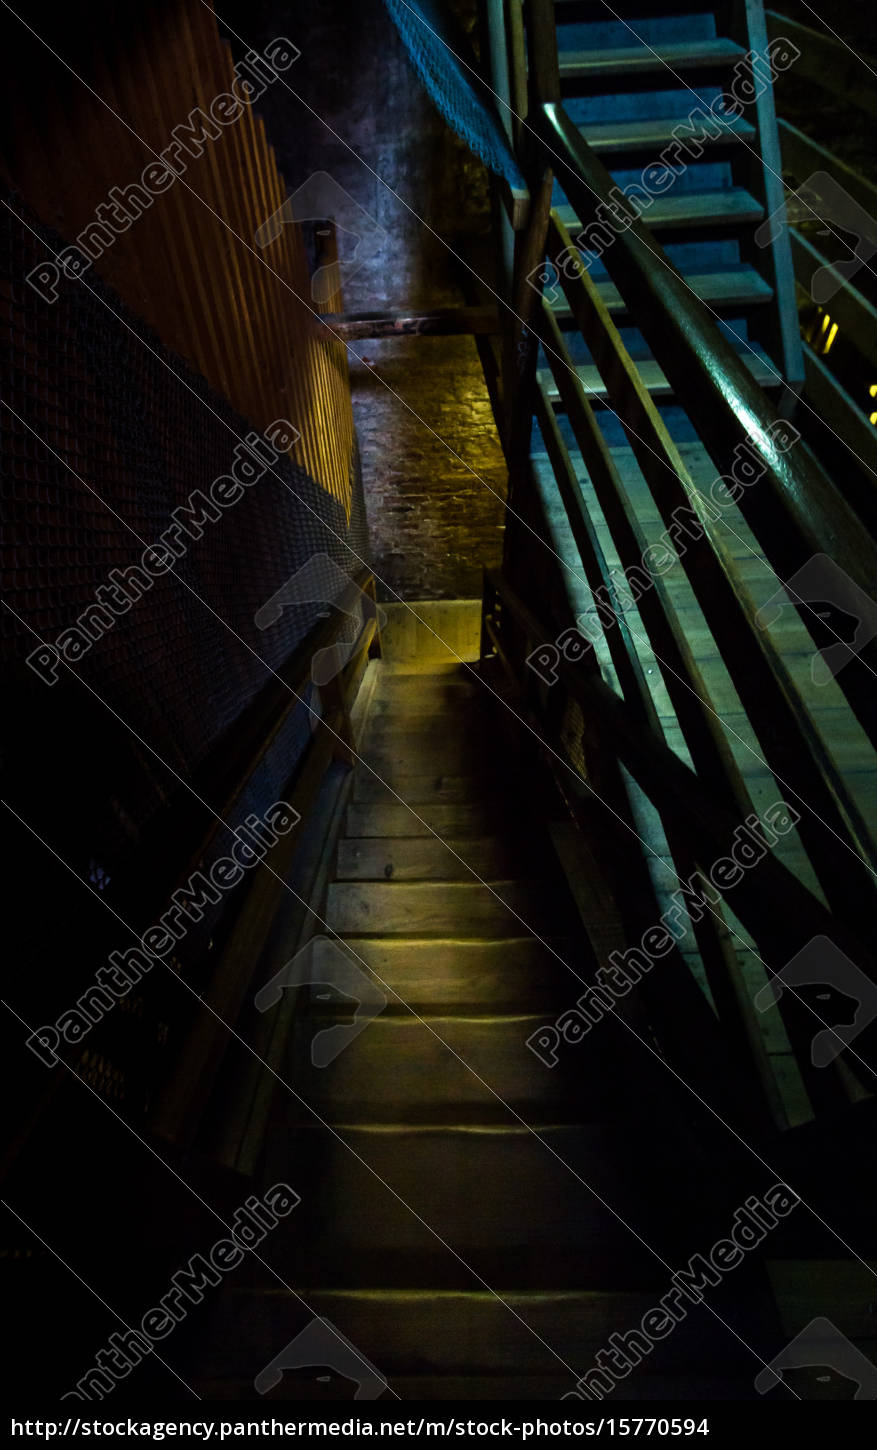 an, old, hazardous, wooden, staircase, leads - 15770594